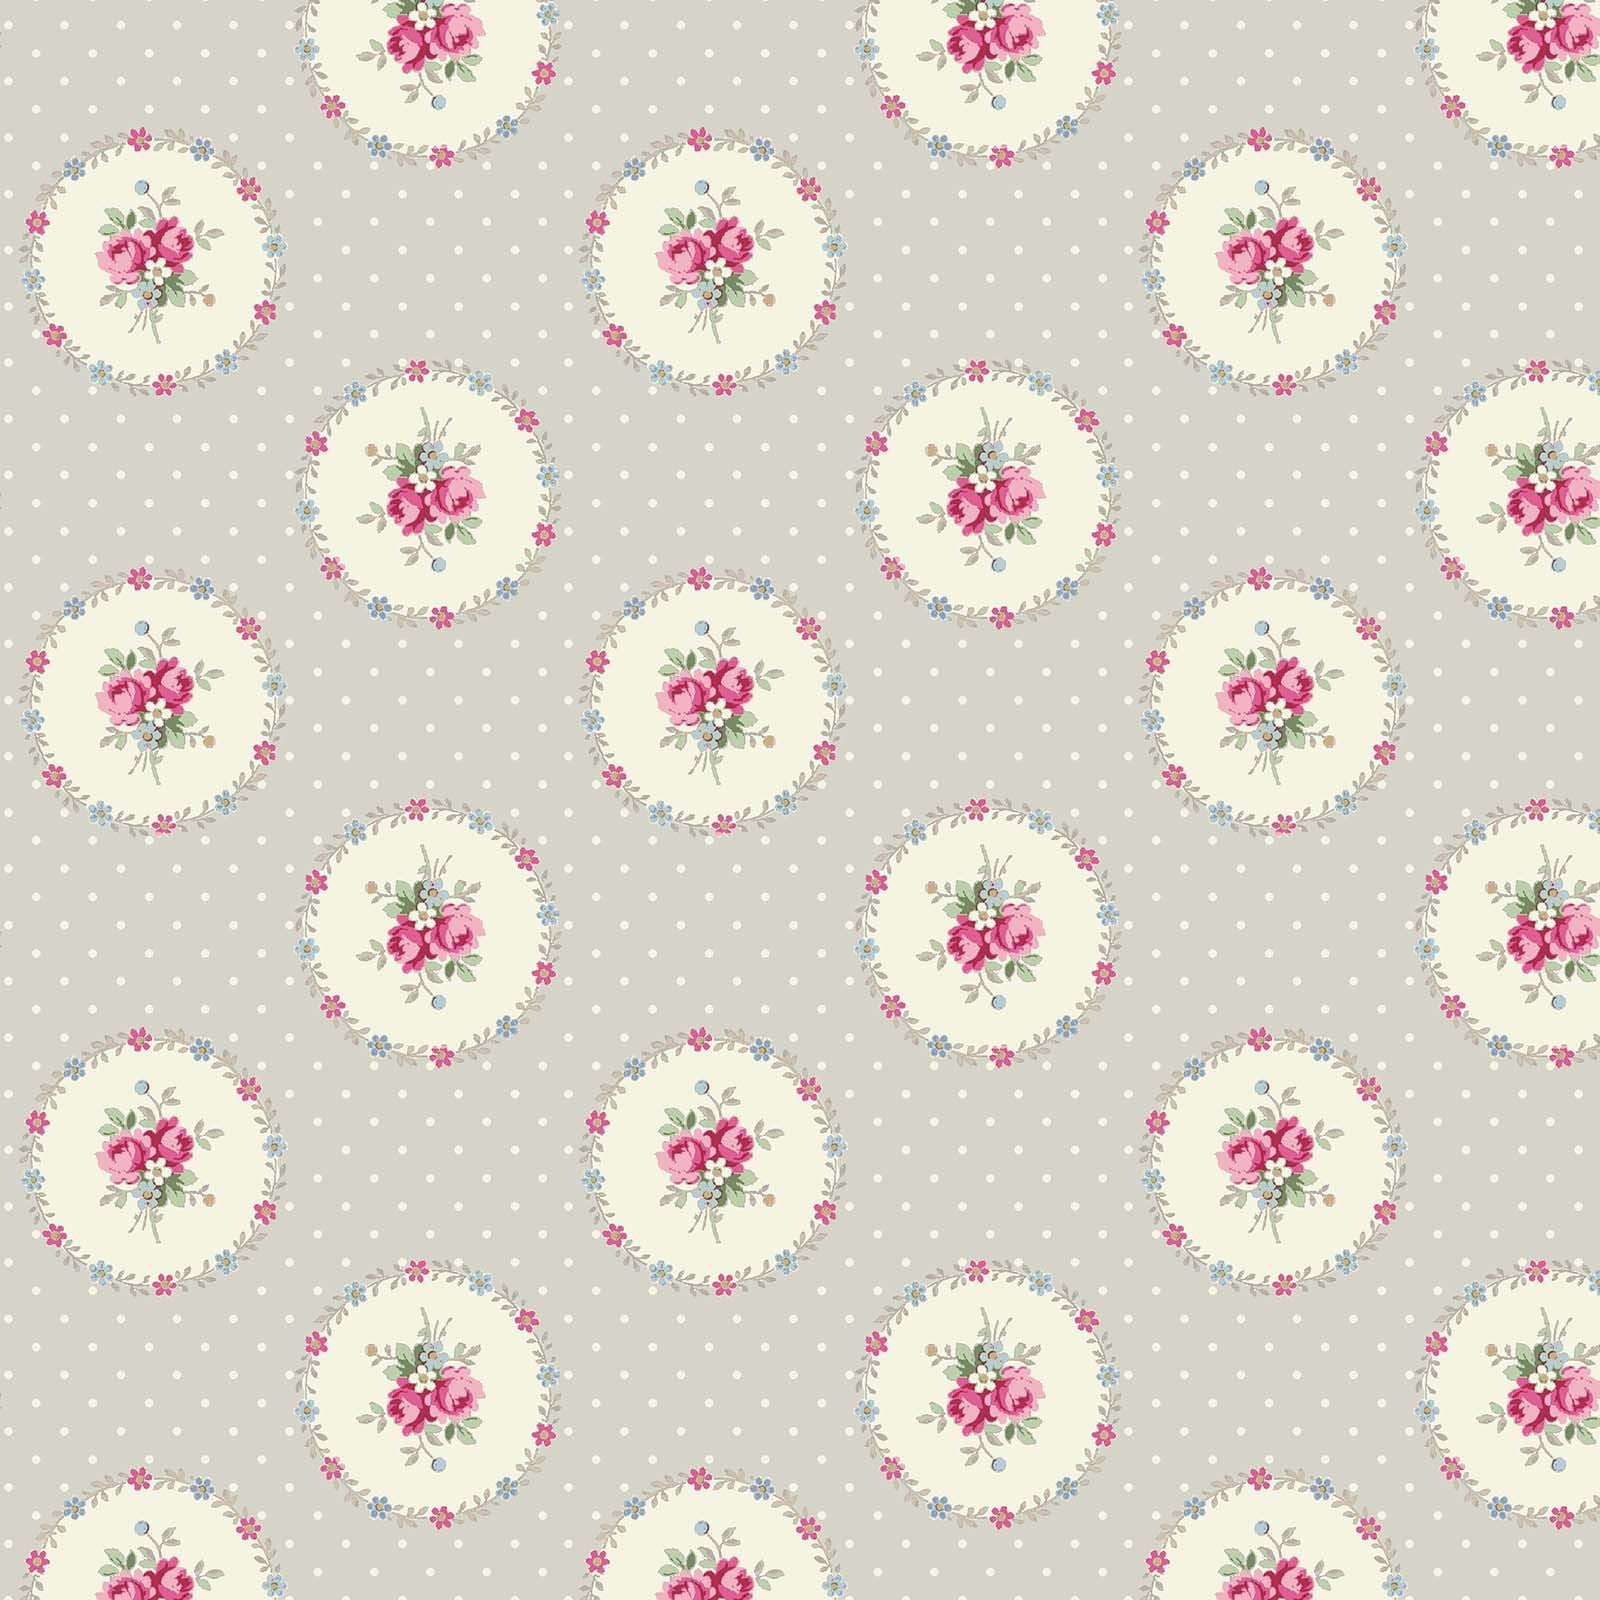 Ruru Rose Bouquet in Paris cotton fabric by Quilt Gate Ru2370-14B Circles of Roses on Gray